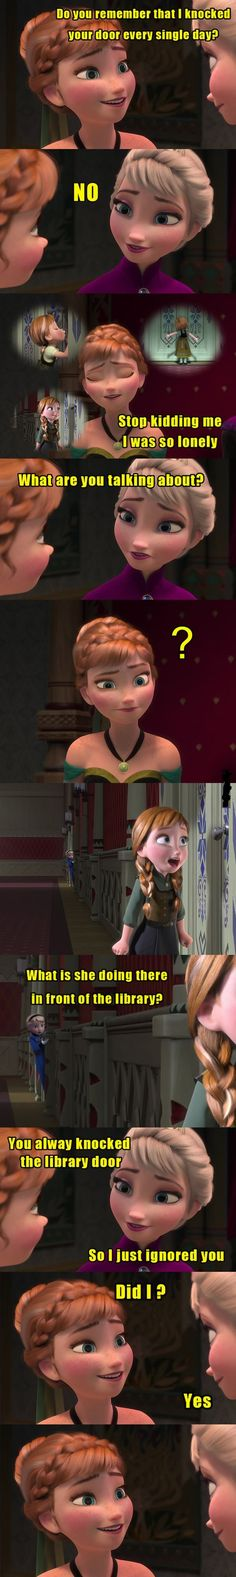 Anna: What i have done. Funny Frozen Picture Message - @mobile9 #disney